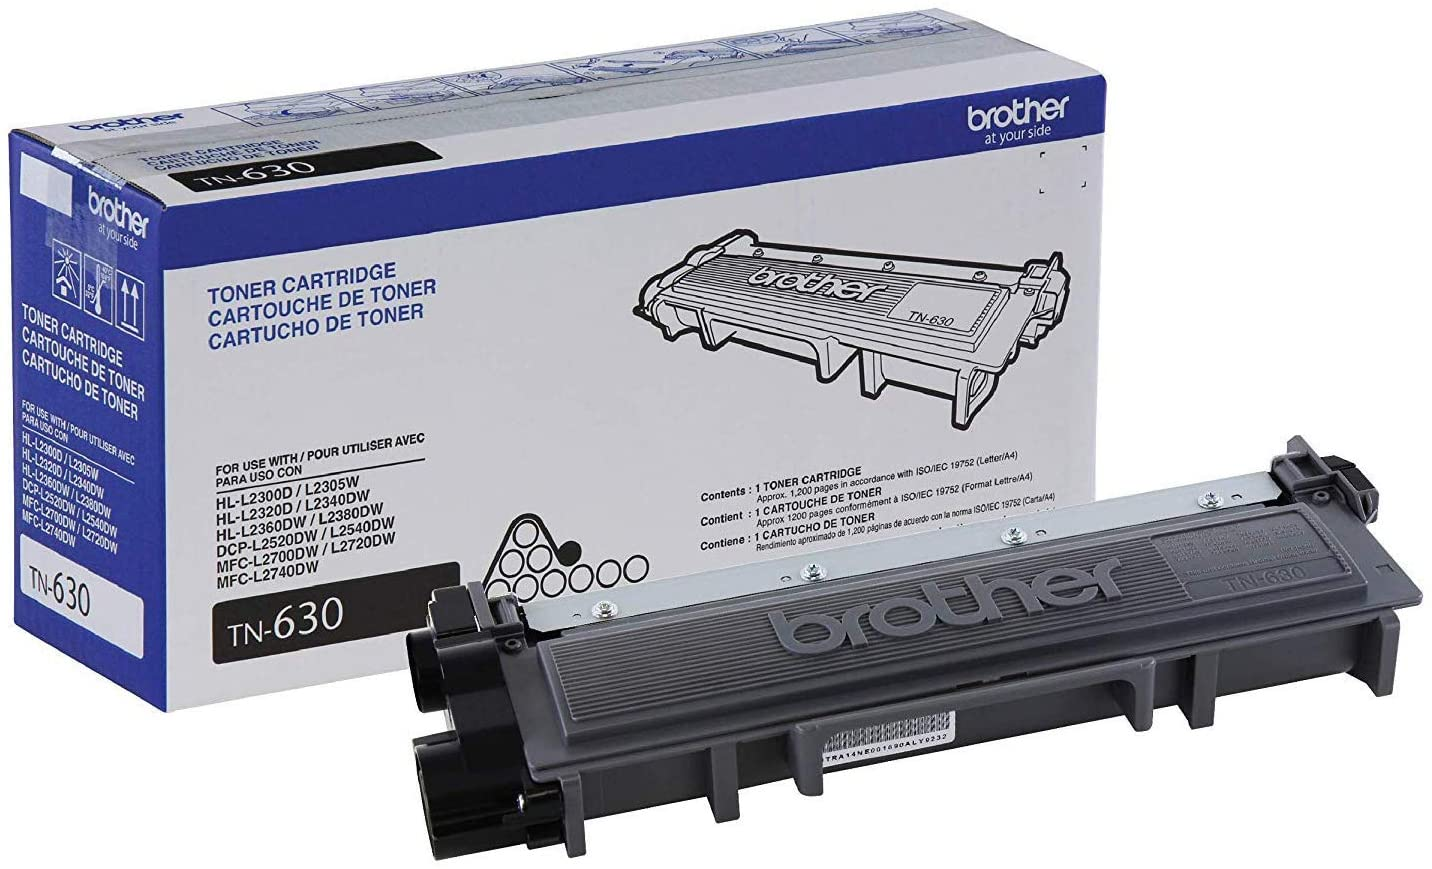 Brother DCP Series Printer Supplies